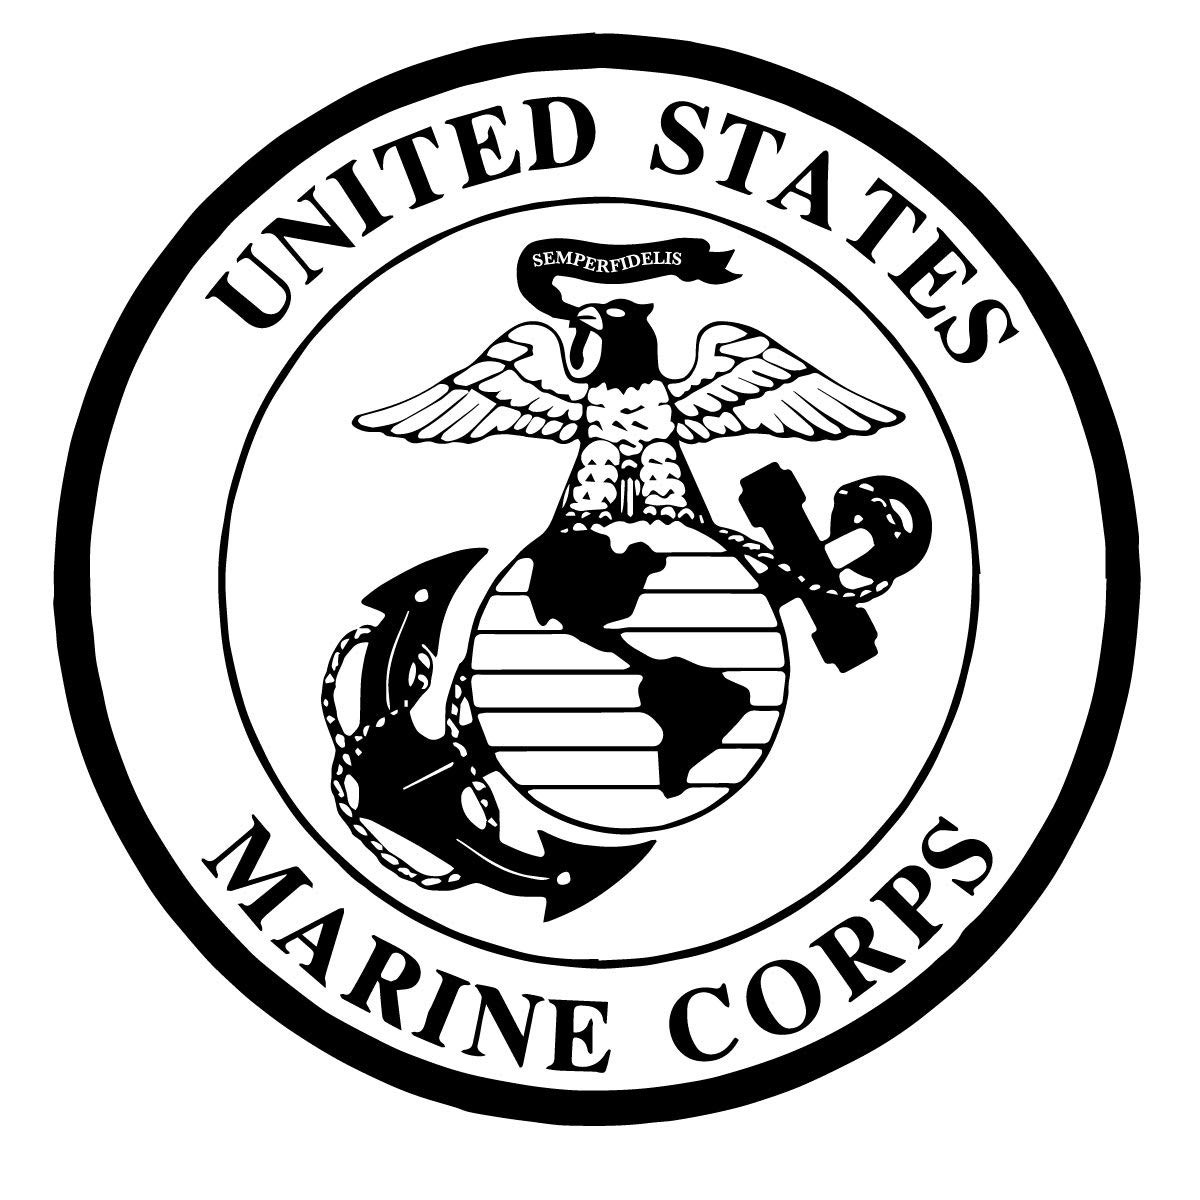 Marine Corps Decal | Vinyl Wall Decor Design for Office or Window Decoration | Black, White, Red, Blue, Brown, Gray, Gold, Silver, Other Colors